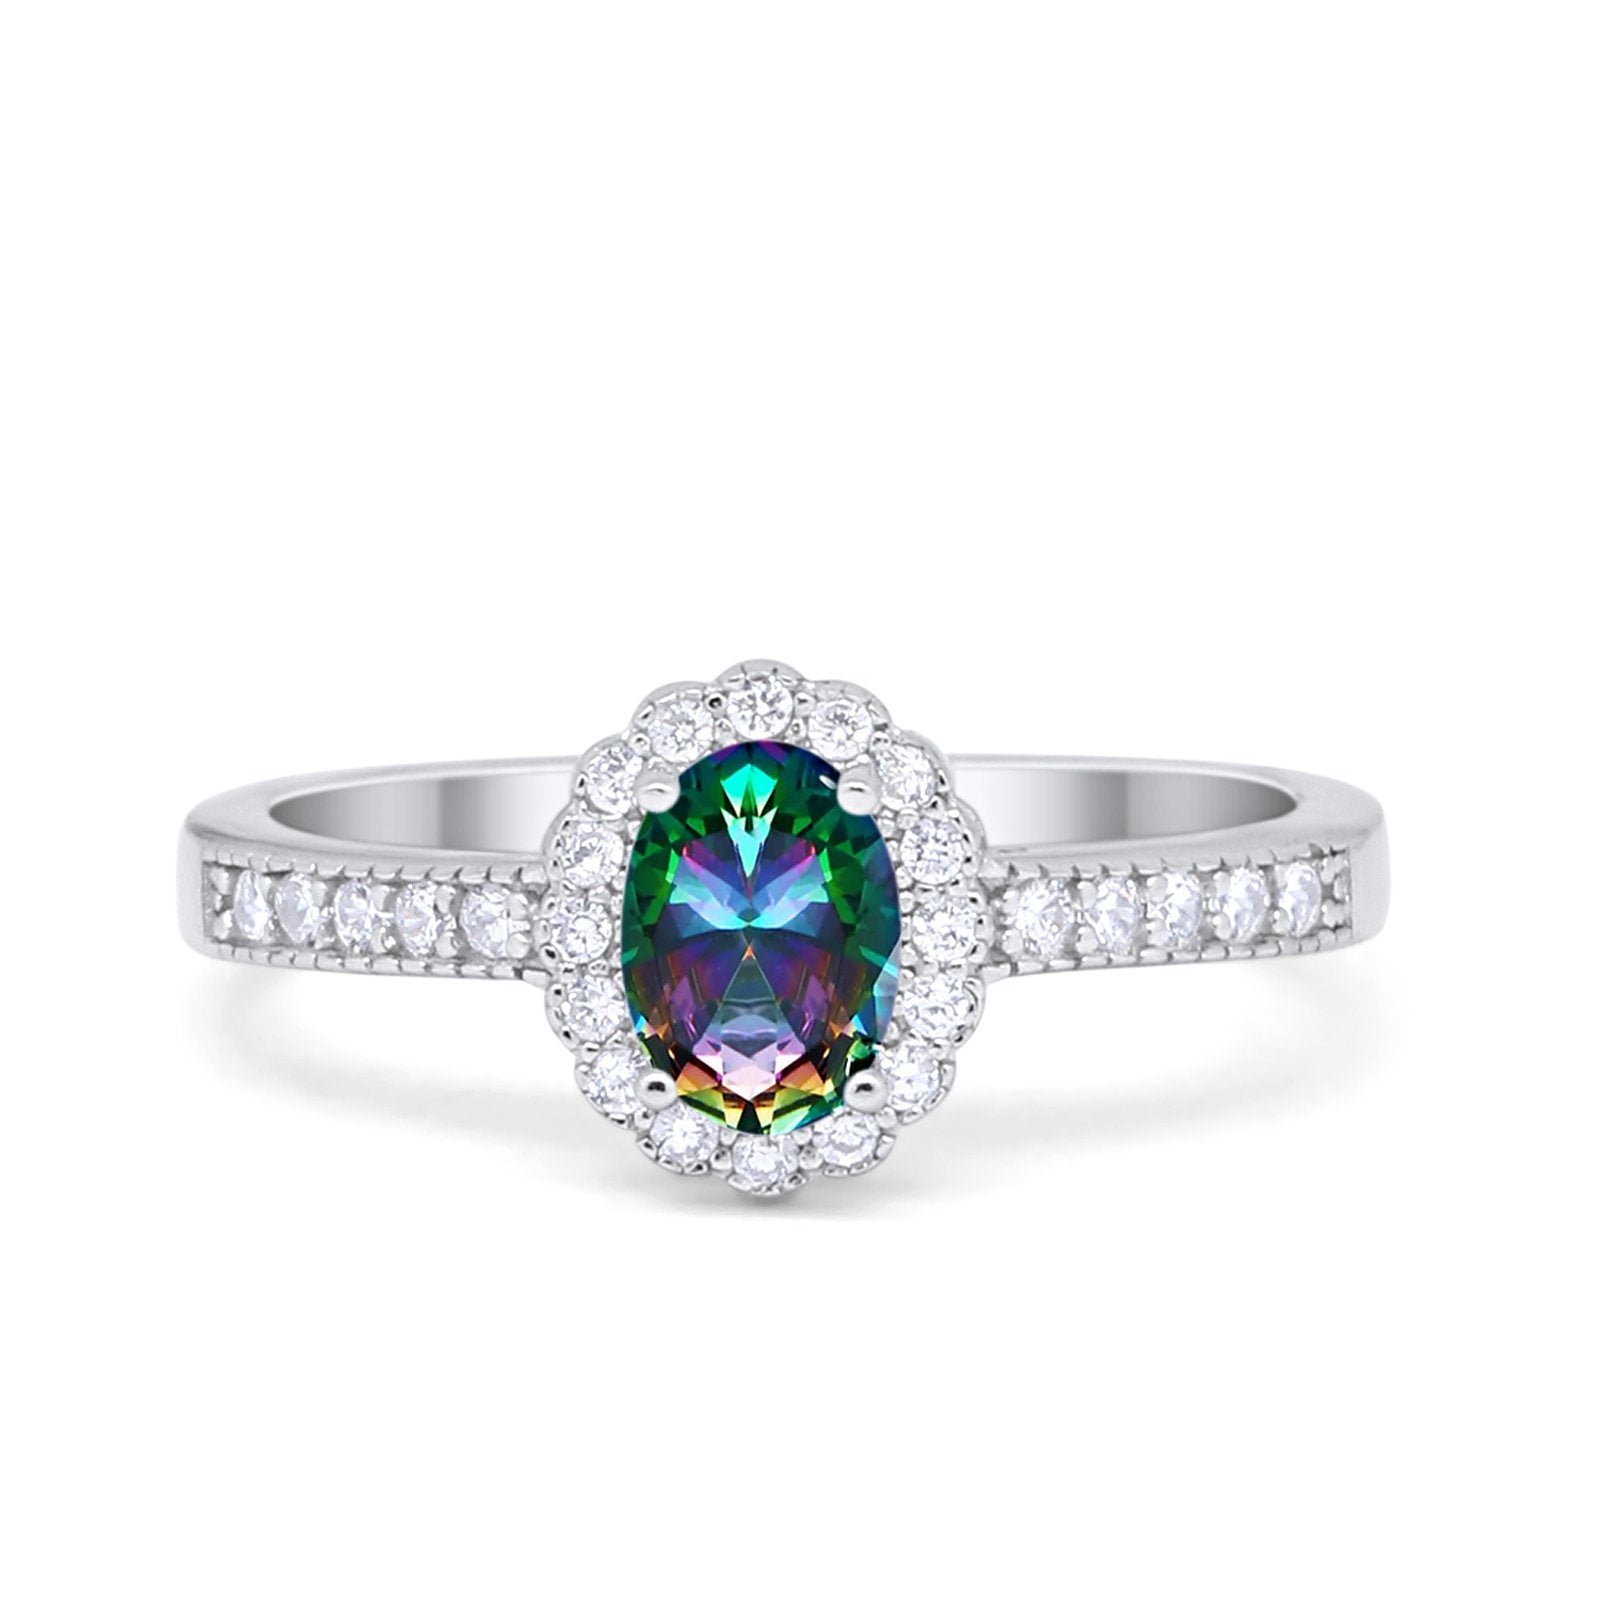 Halo Art Deco Floral Wedding Engagement Ring Oval Cubic Zirconia 925 Sterling Silver Choose Color